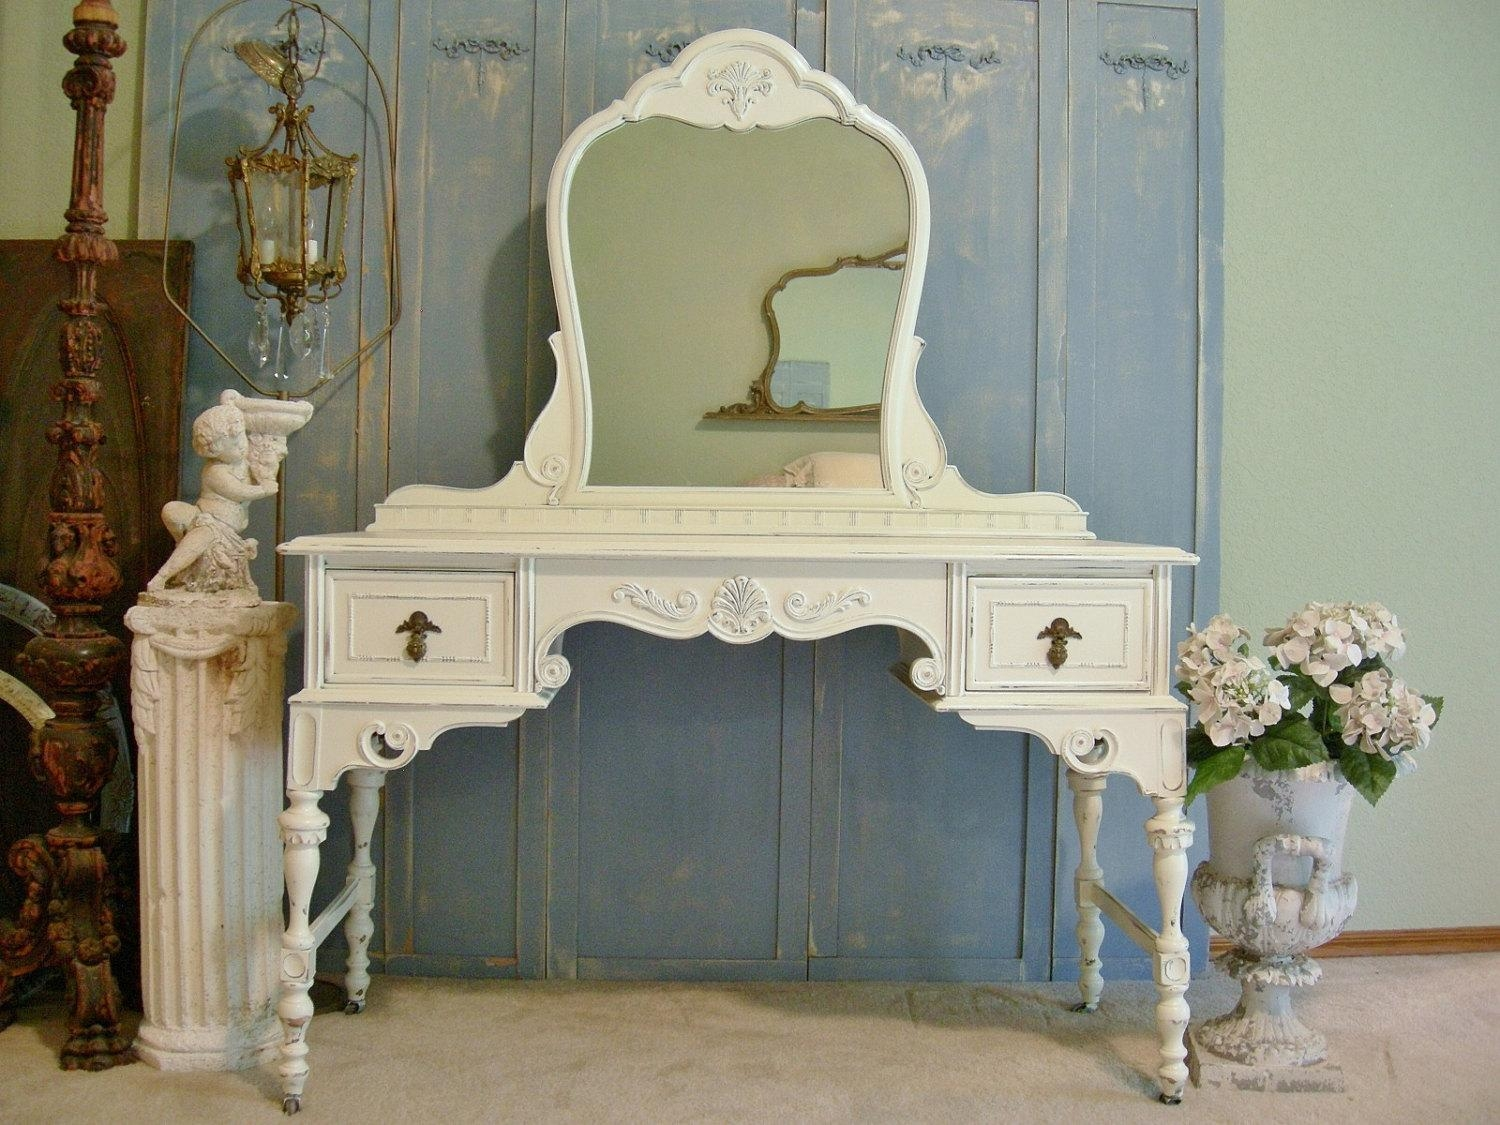 25 Cozy Shabby Chic Furniture Ideas For Your Home | Top Home Designs In White Shabby Chic Mirror Sale (View 19 of 20)